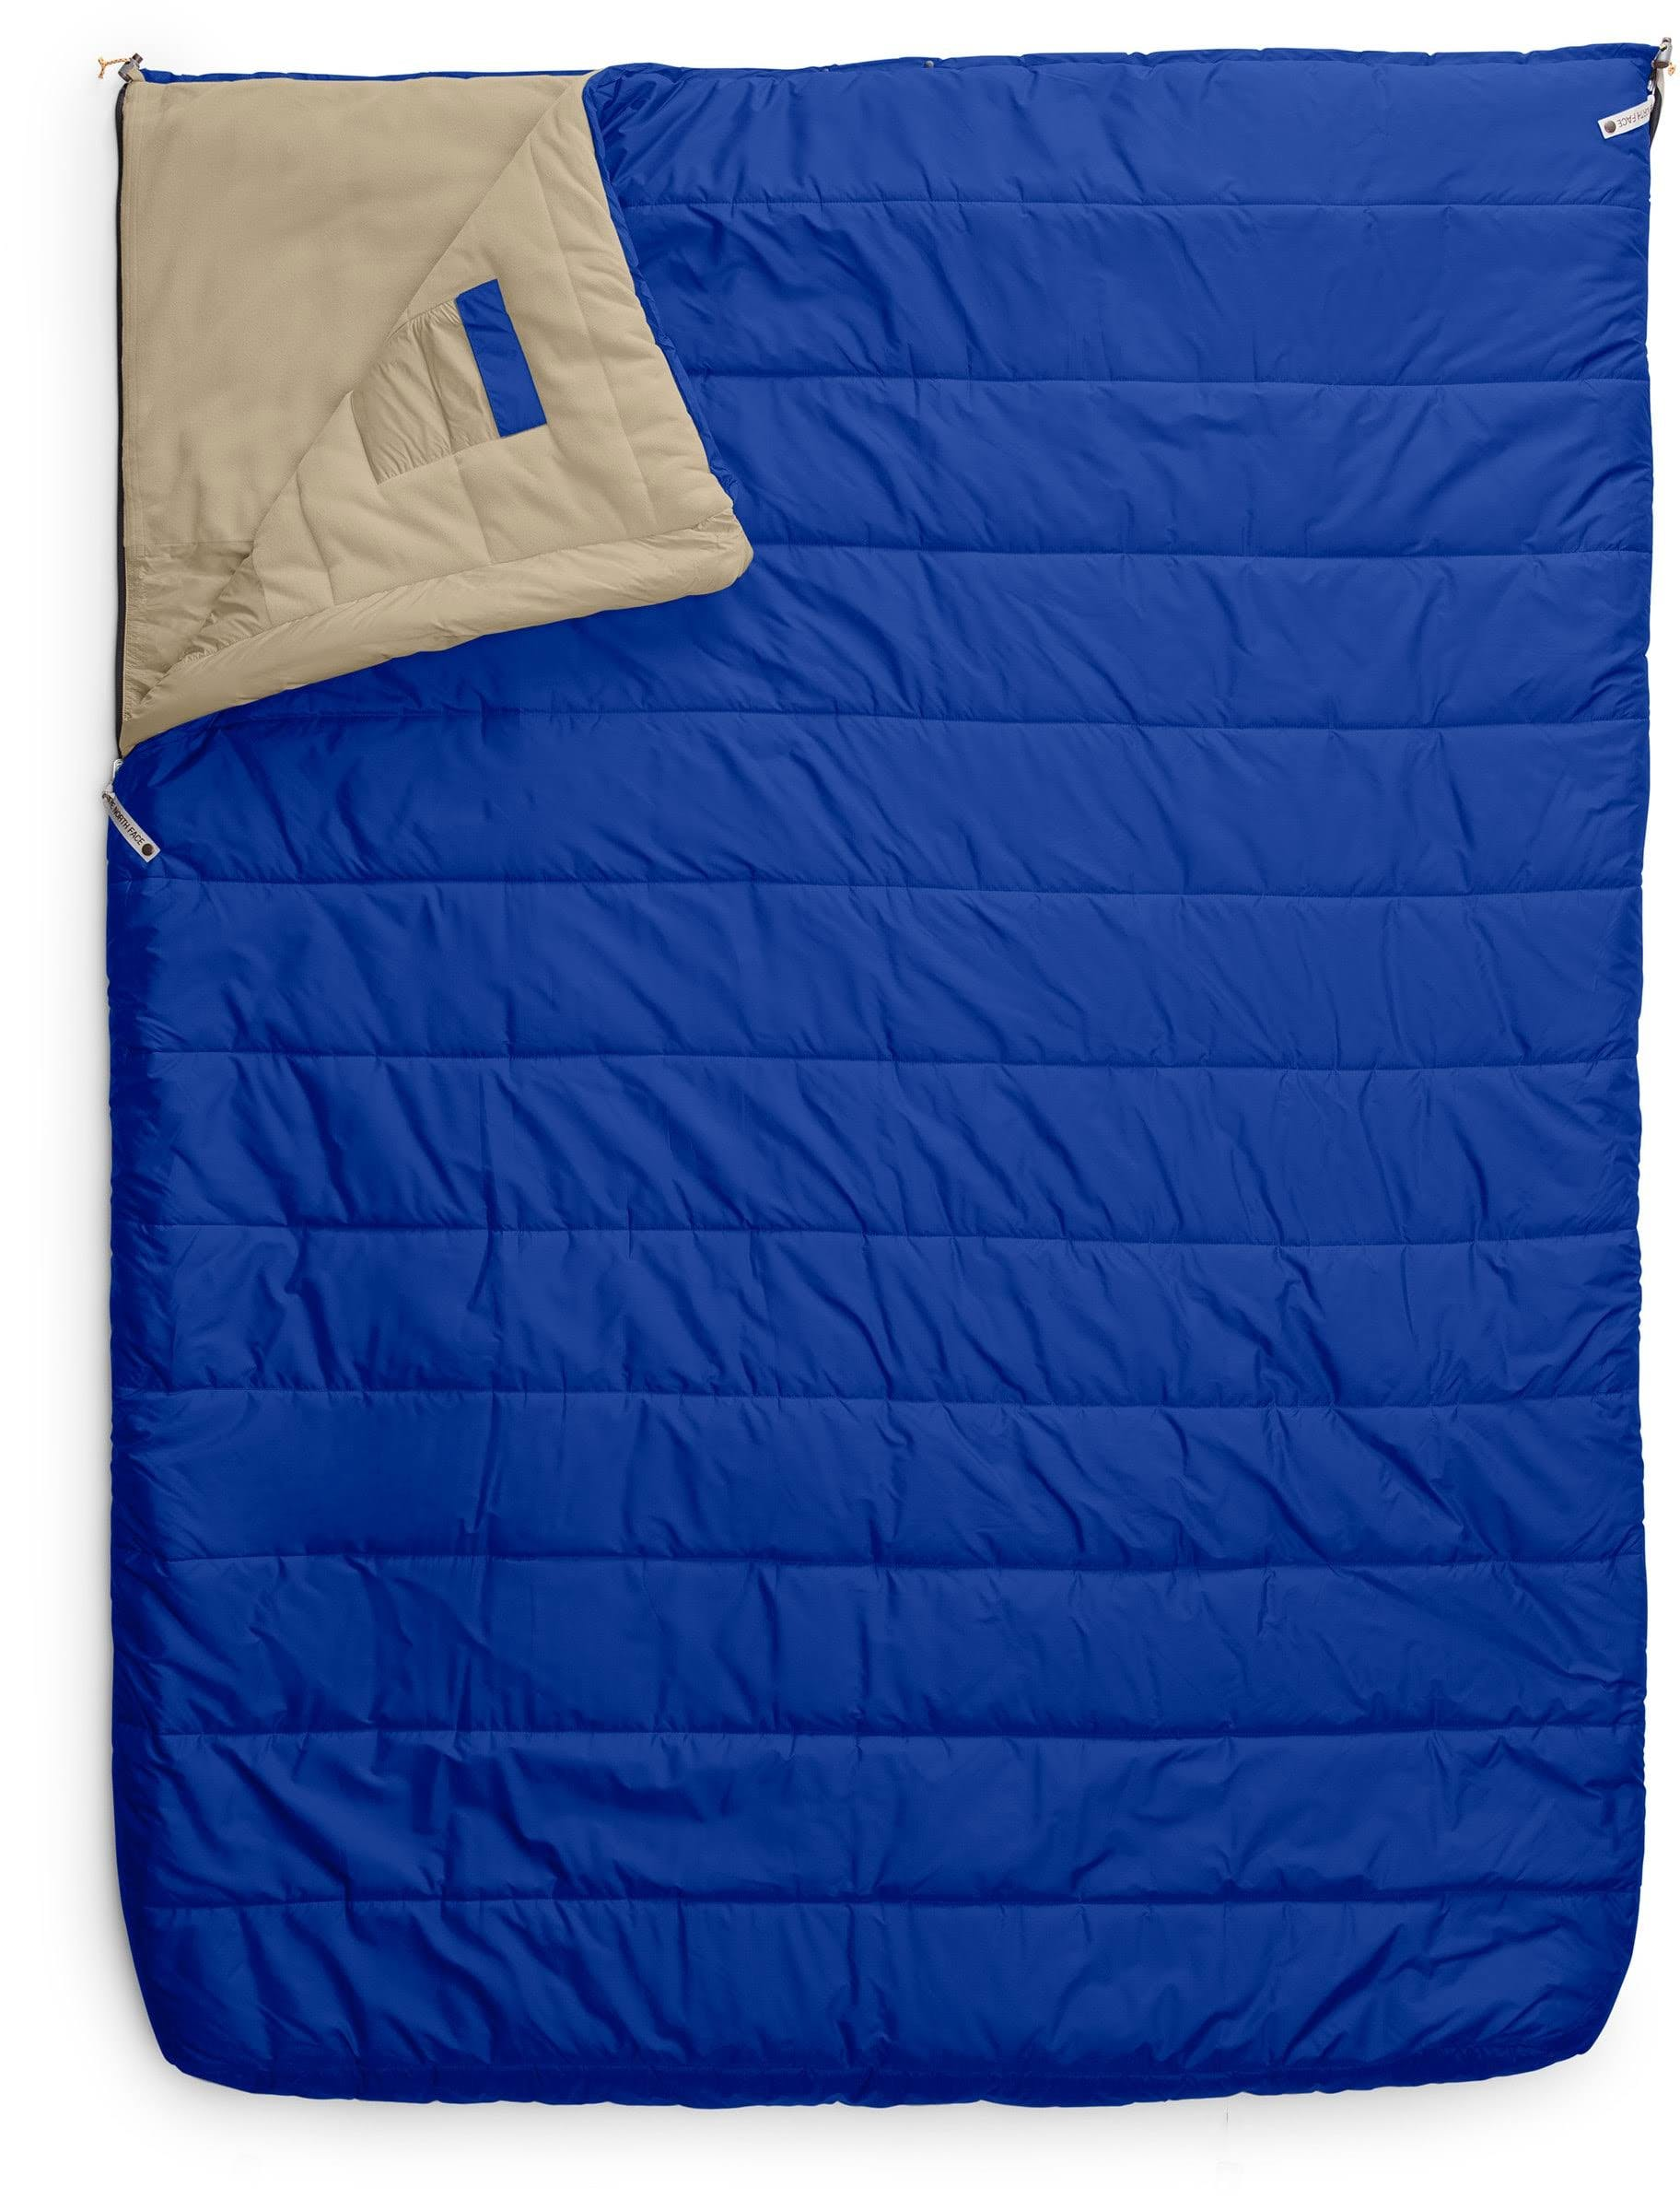 The North Face Eco Trail Bed Double 20 Sleeping Bag: Blue